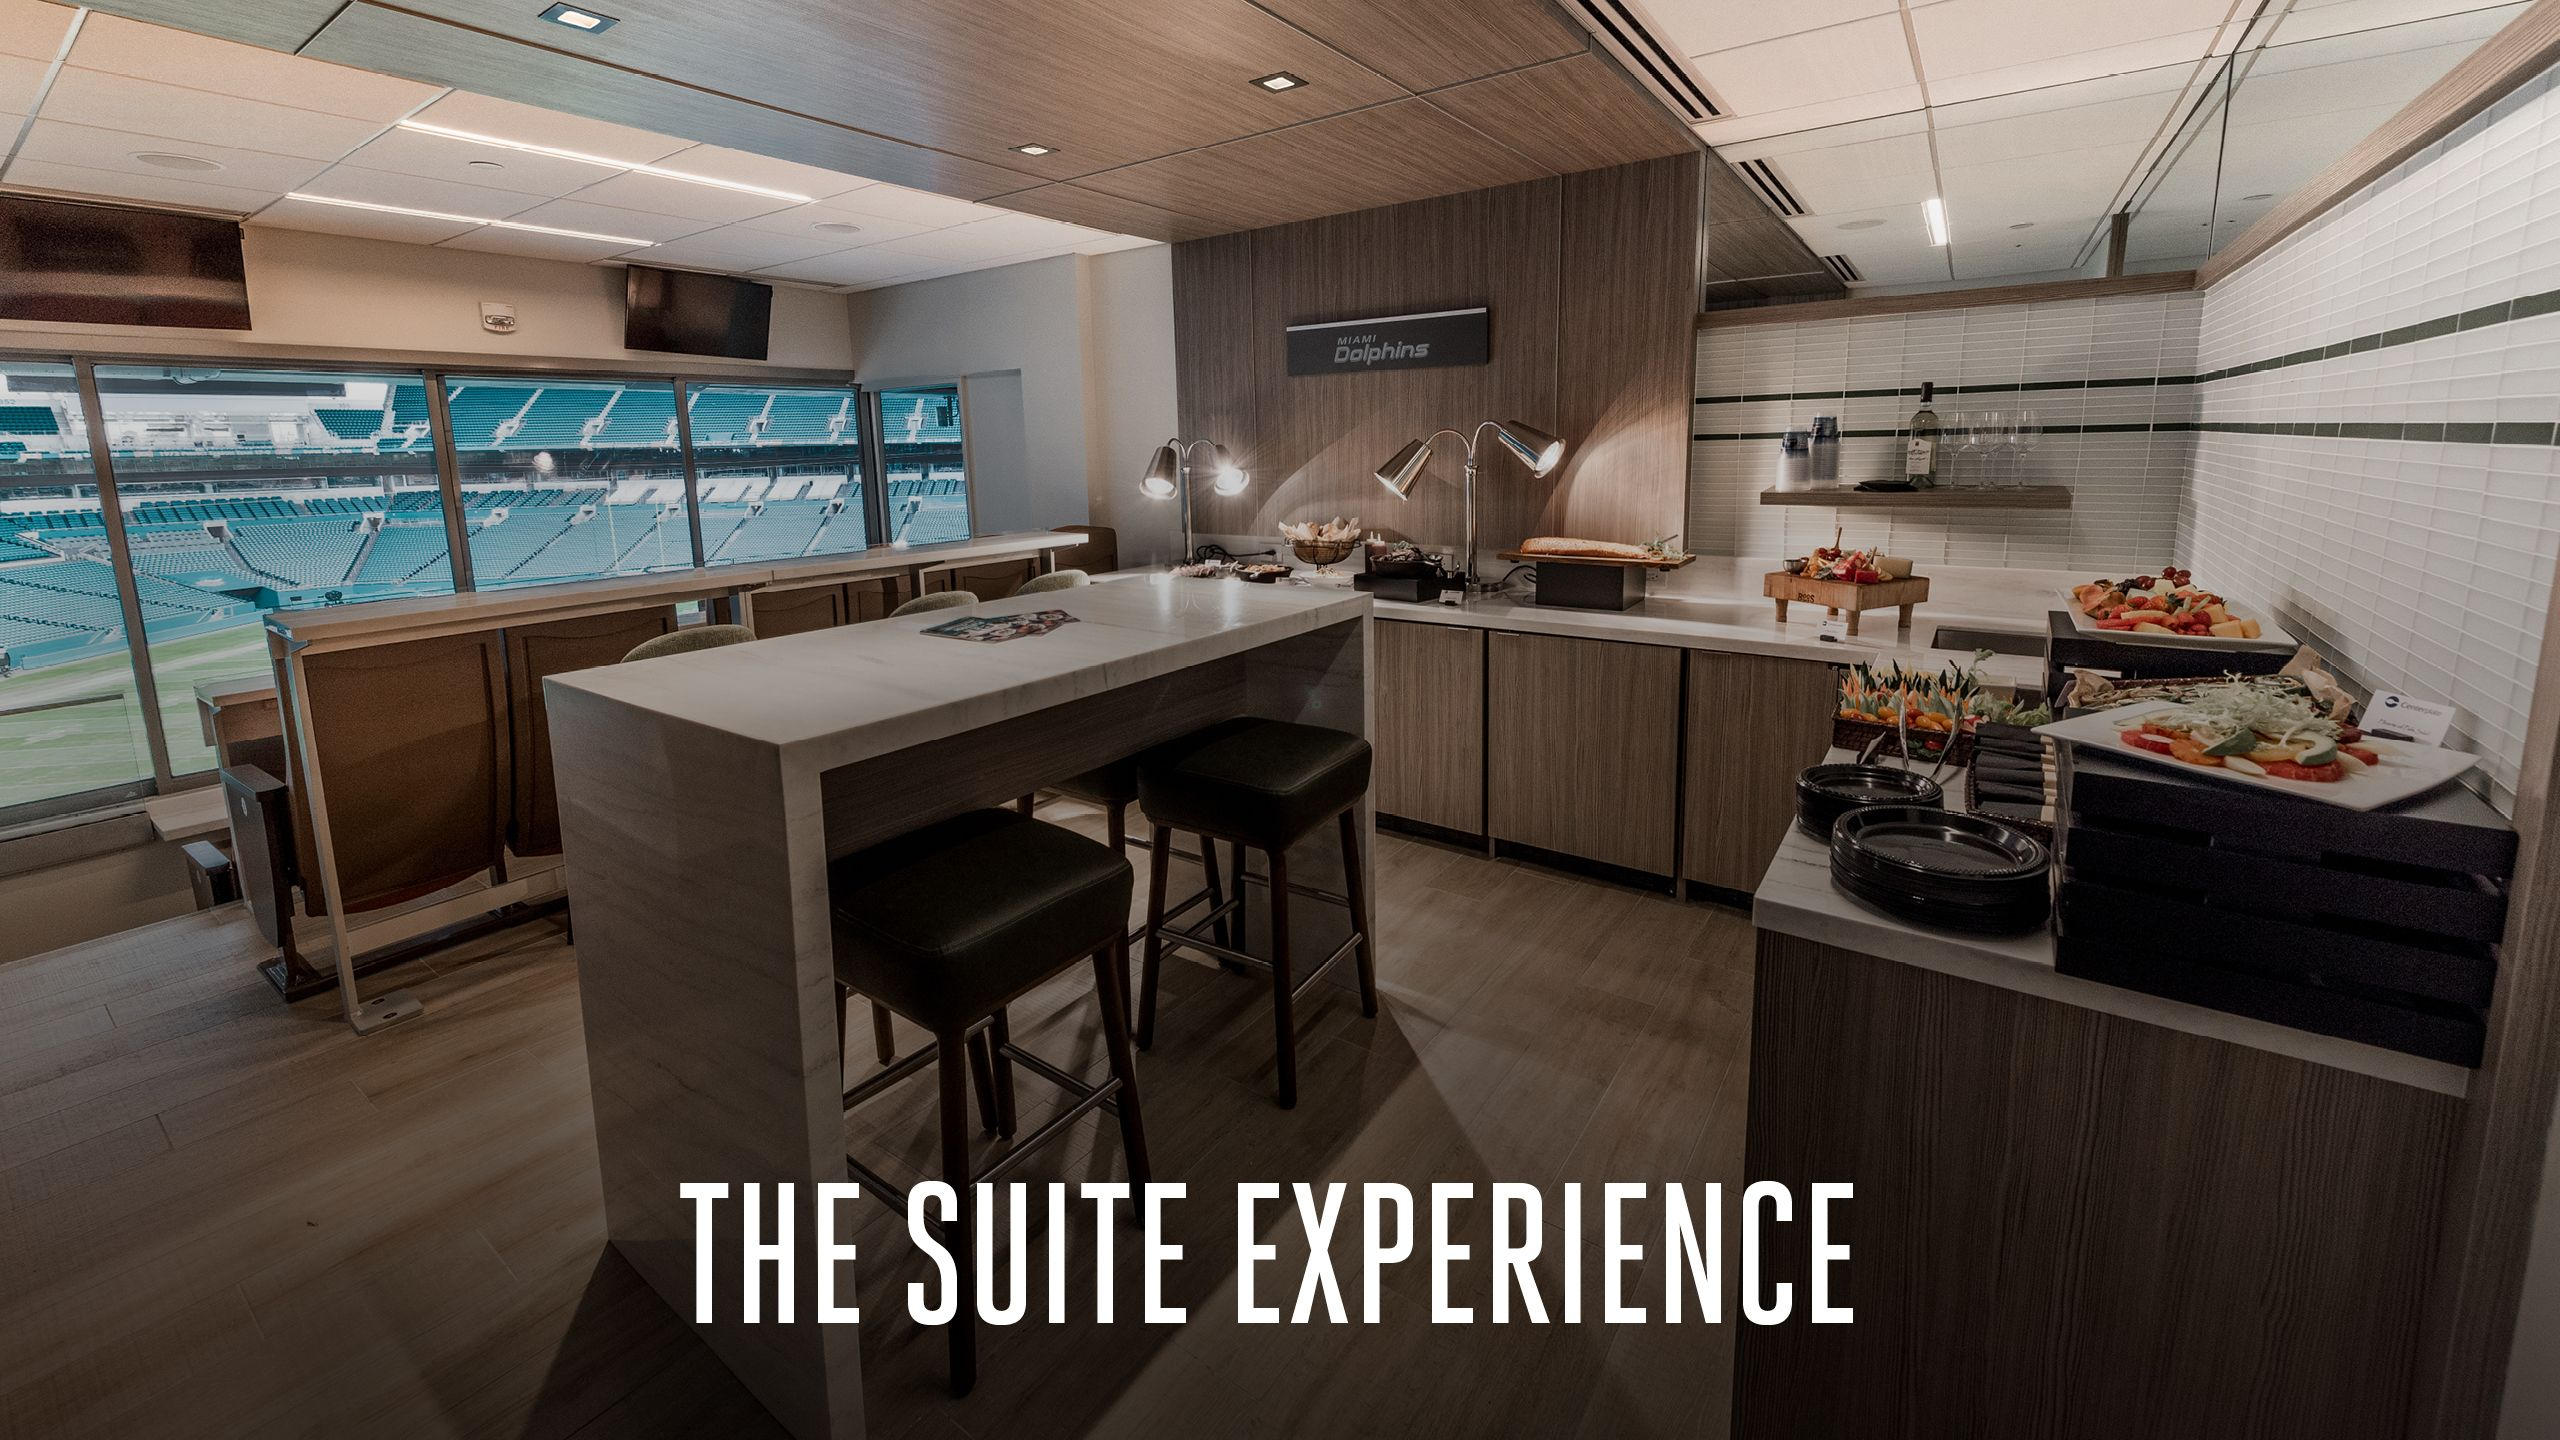 Header: The Suite Experience